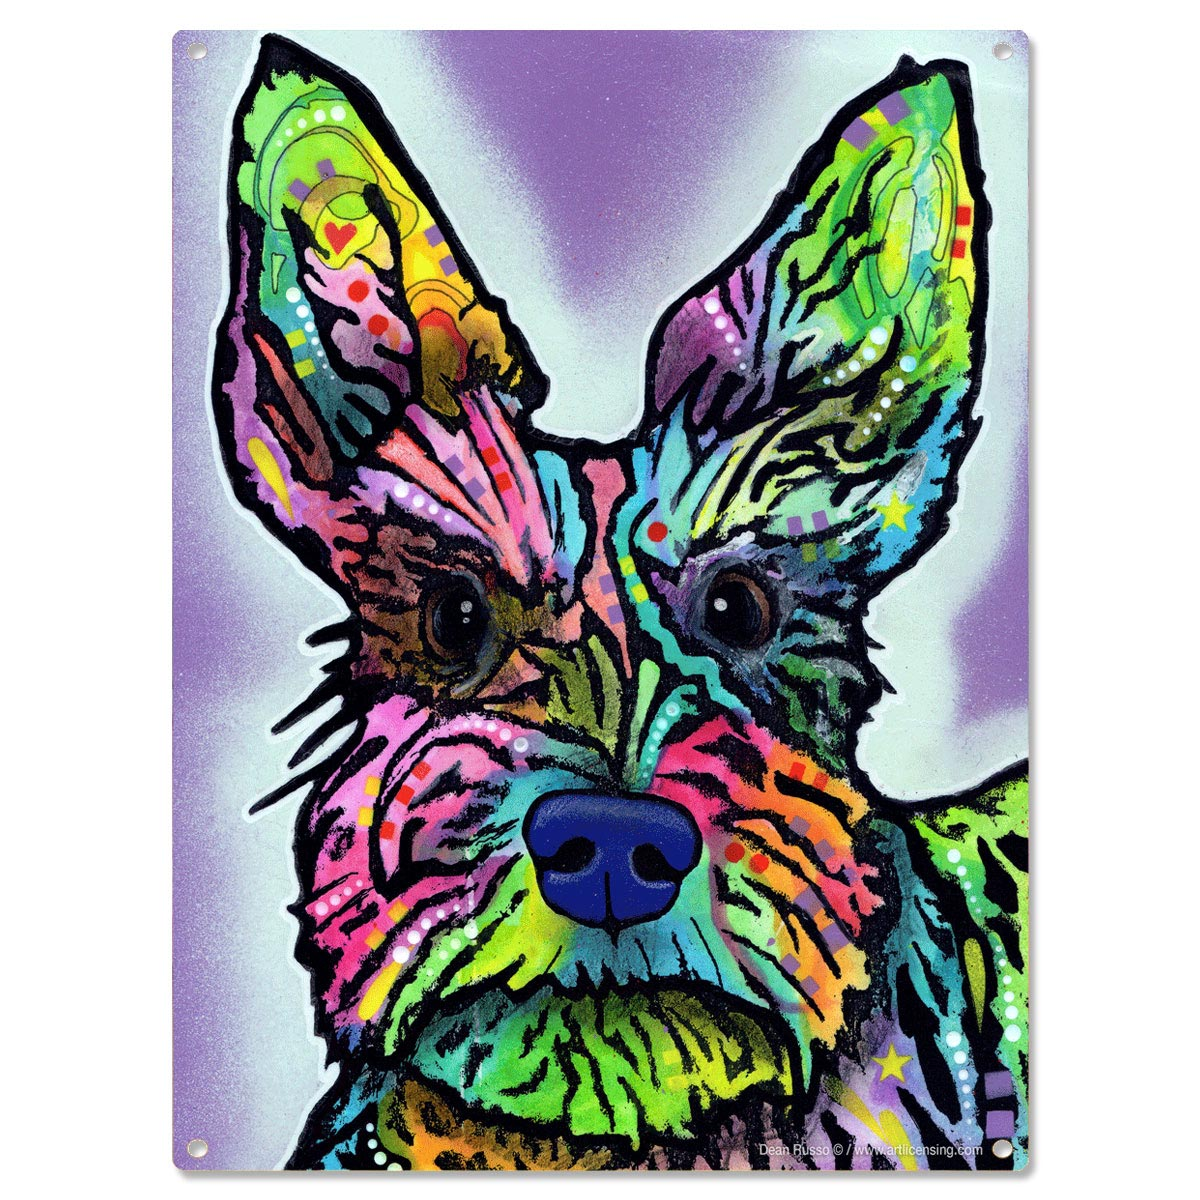 schnauzer dog dean russo metal sign stella pop art pet decor 12 x 16 - Dean Russo